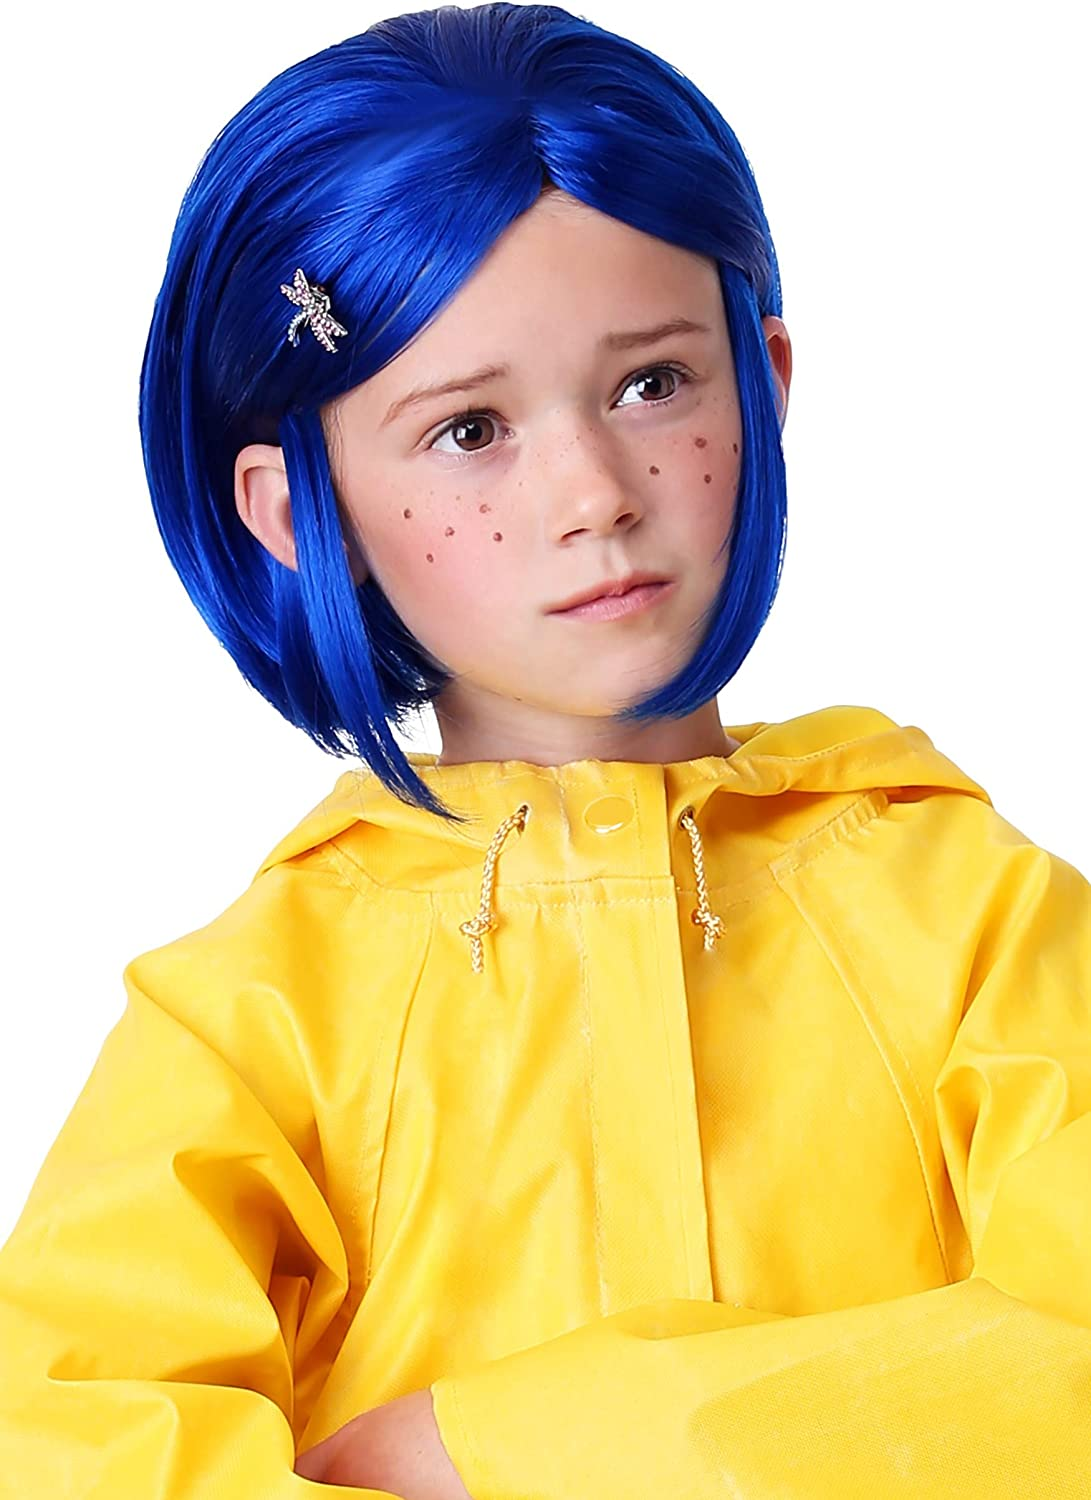 Amazon Com Kids Coraline Blue Wig For Girls Coraline Costume Standard Toys Games